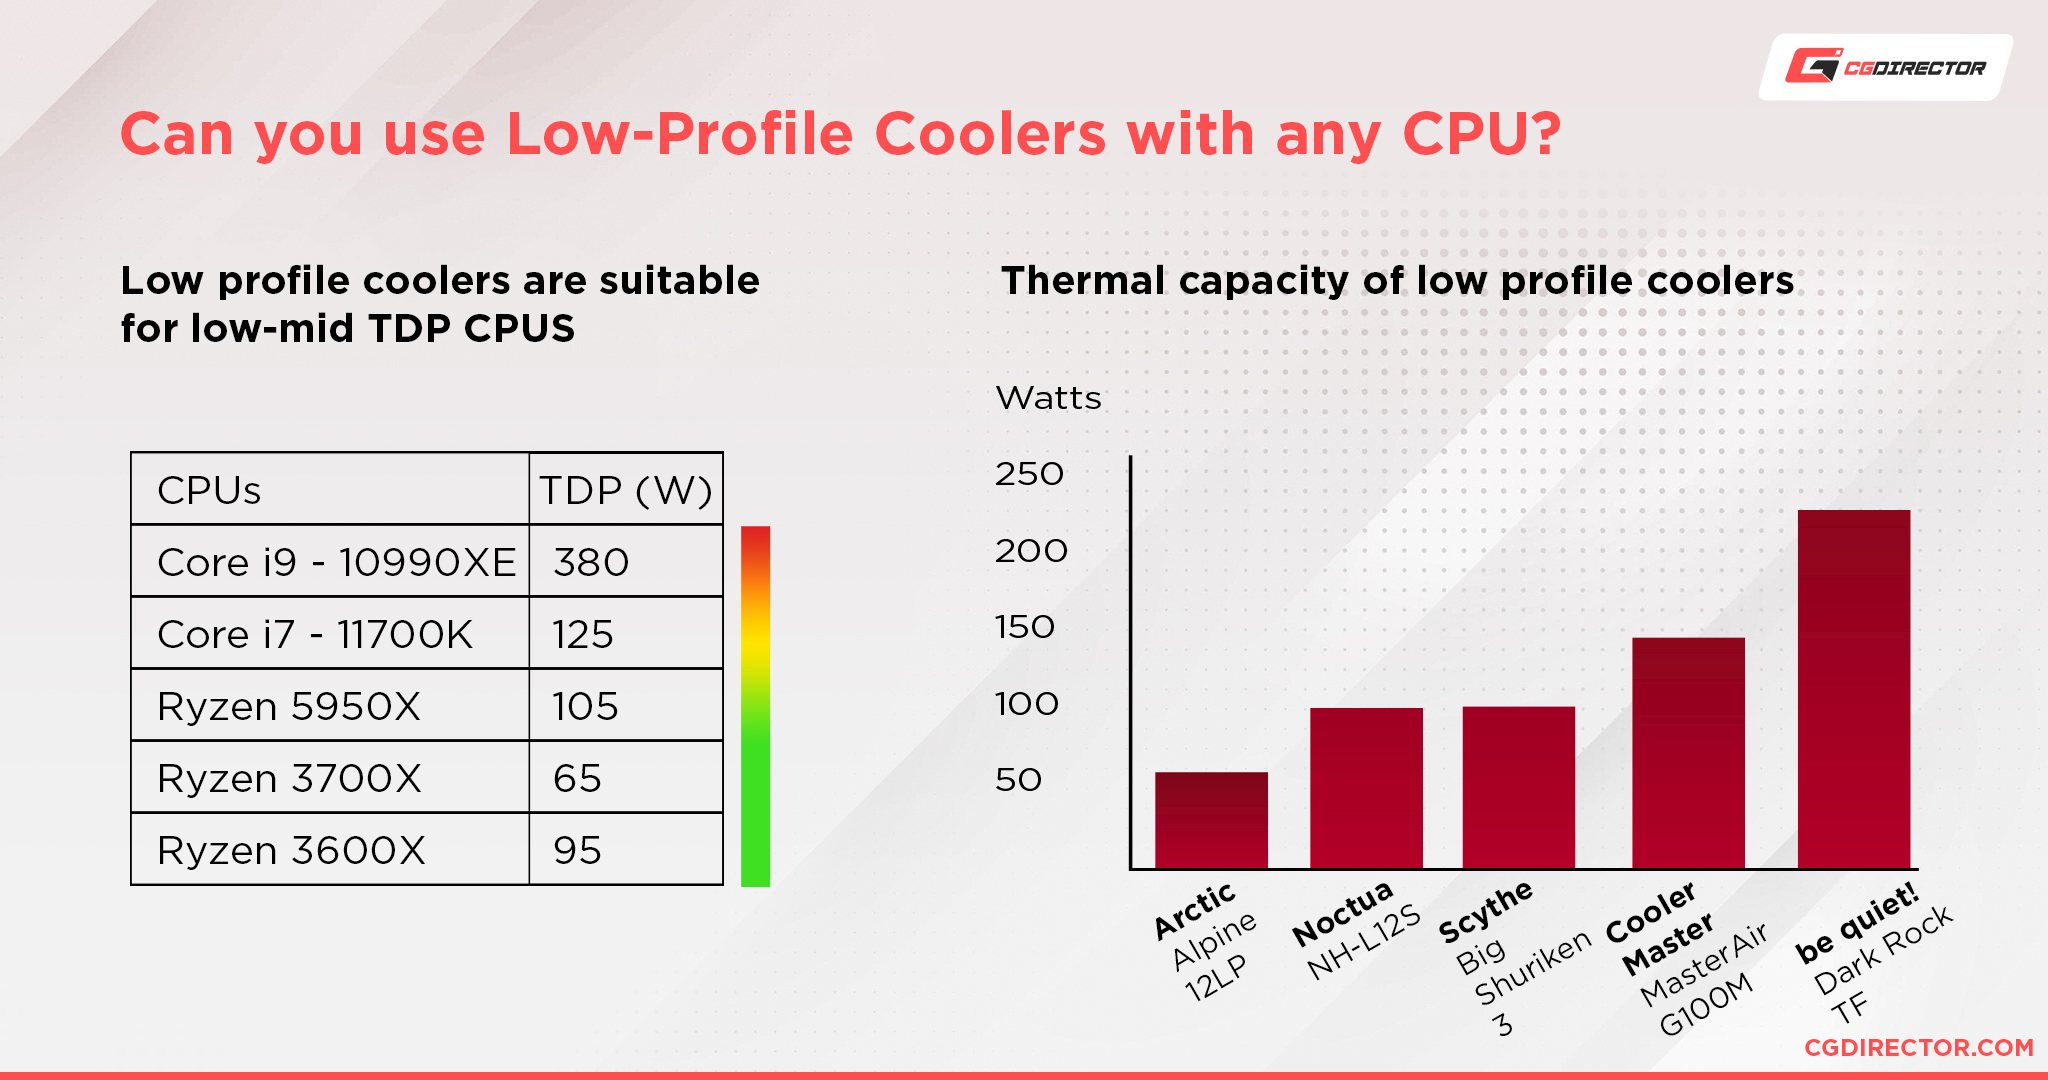 Can you use Low-Profile Coolers with any CPU